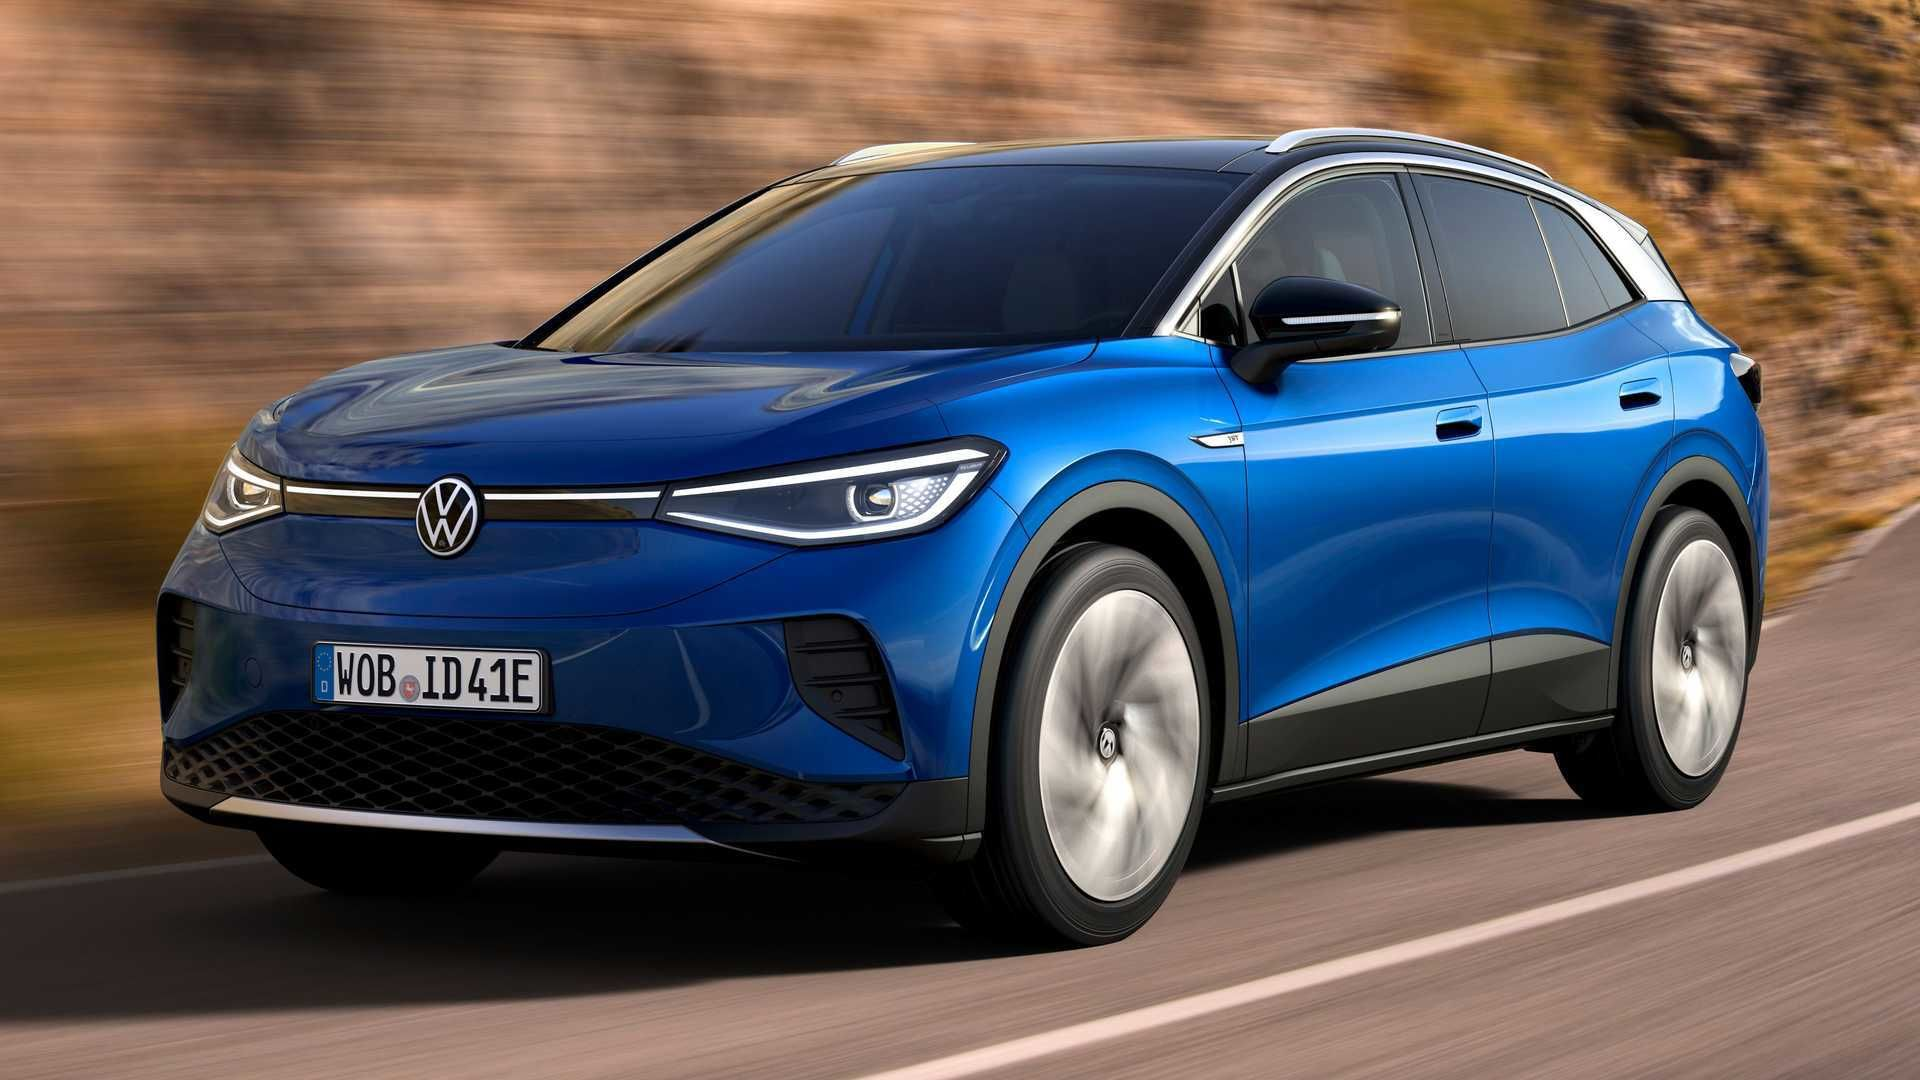 2021 Volkswagen ID.4 Prototype First Drive Review: فقط ساده